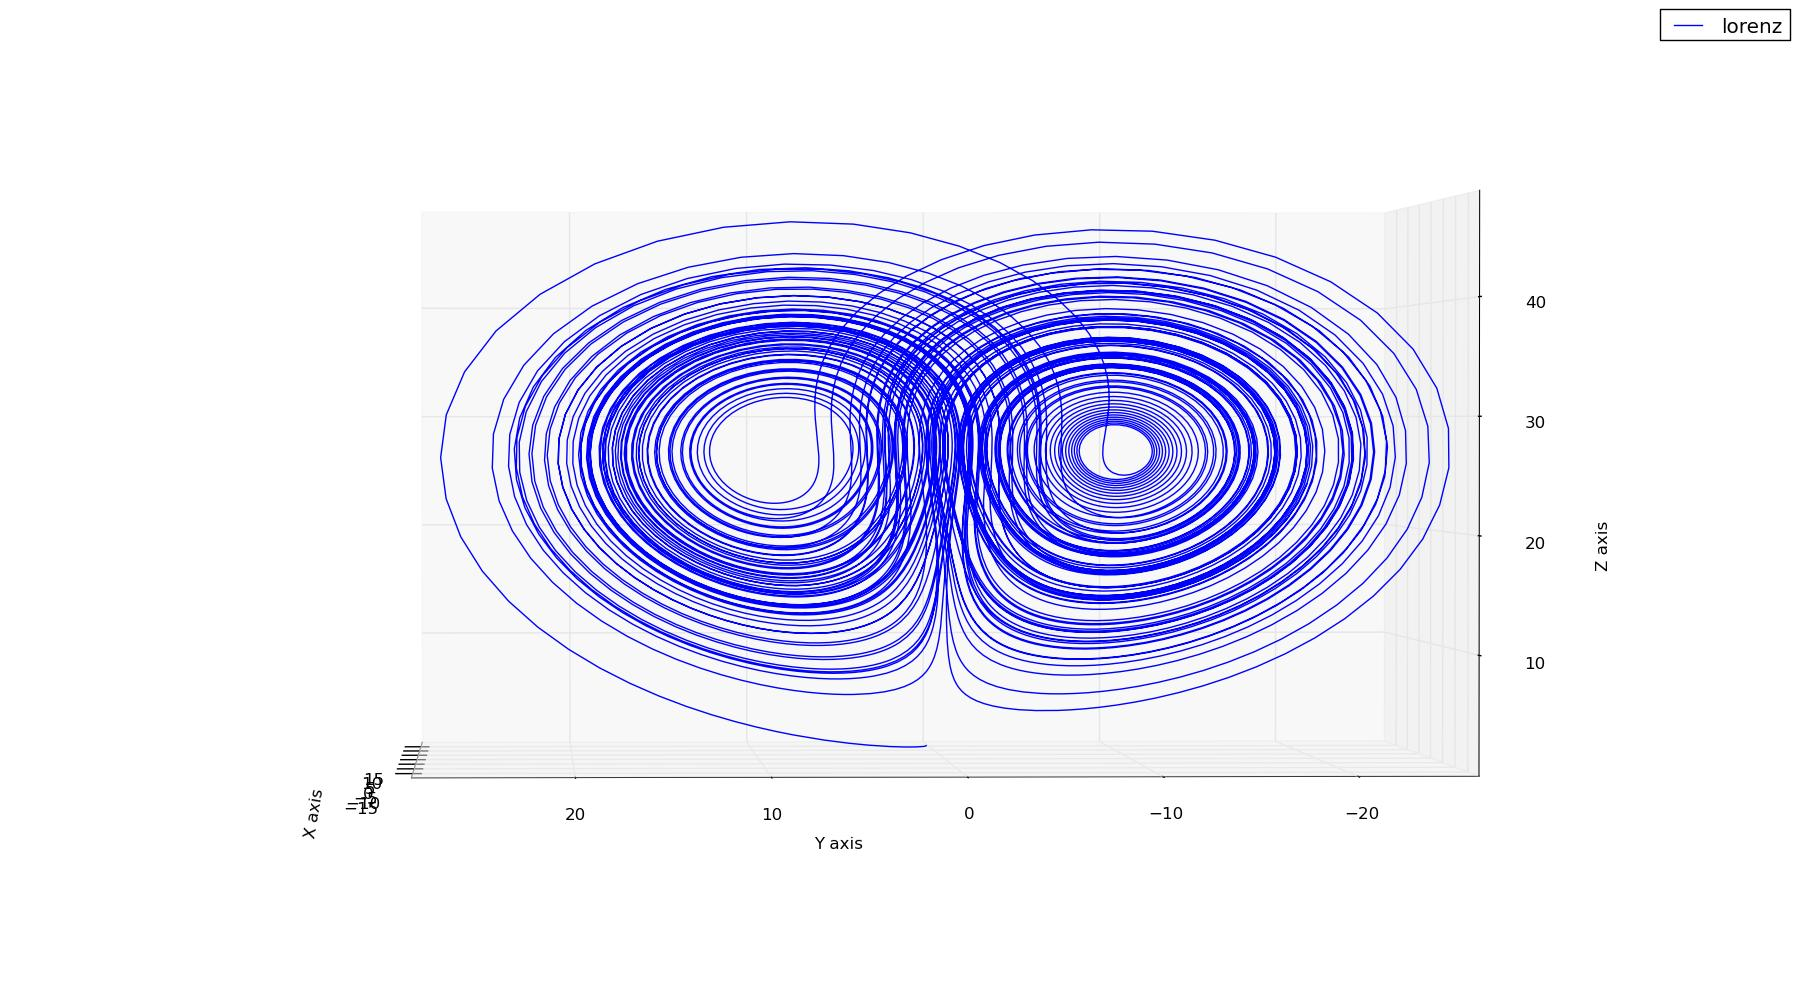 Lorenz Attractor Titanlab